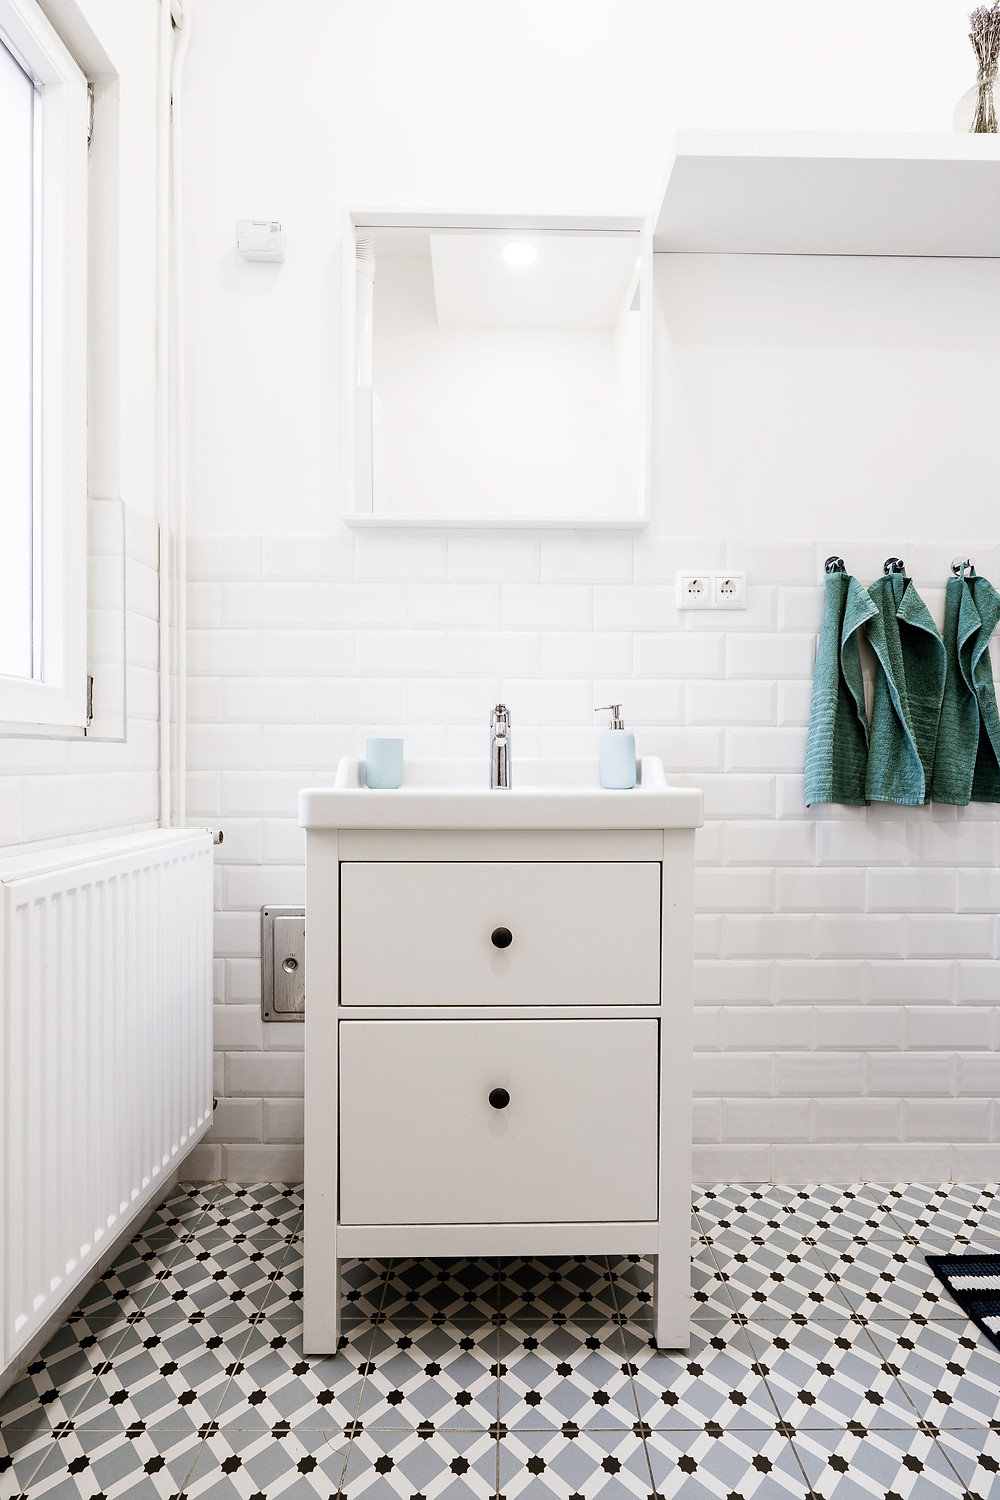 Small Bathrooms ideas, solutions, affectmag, lifestyle magazine